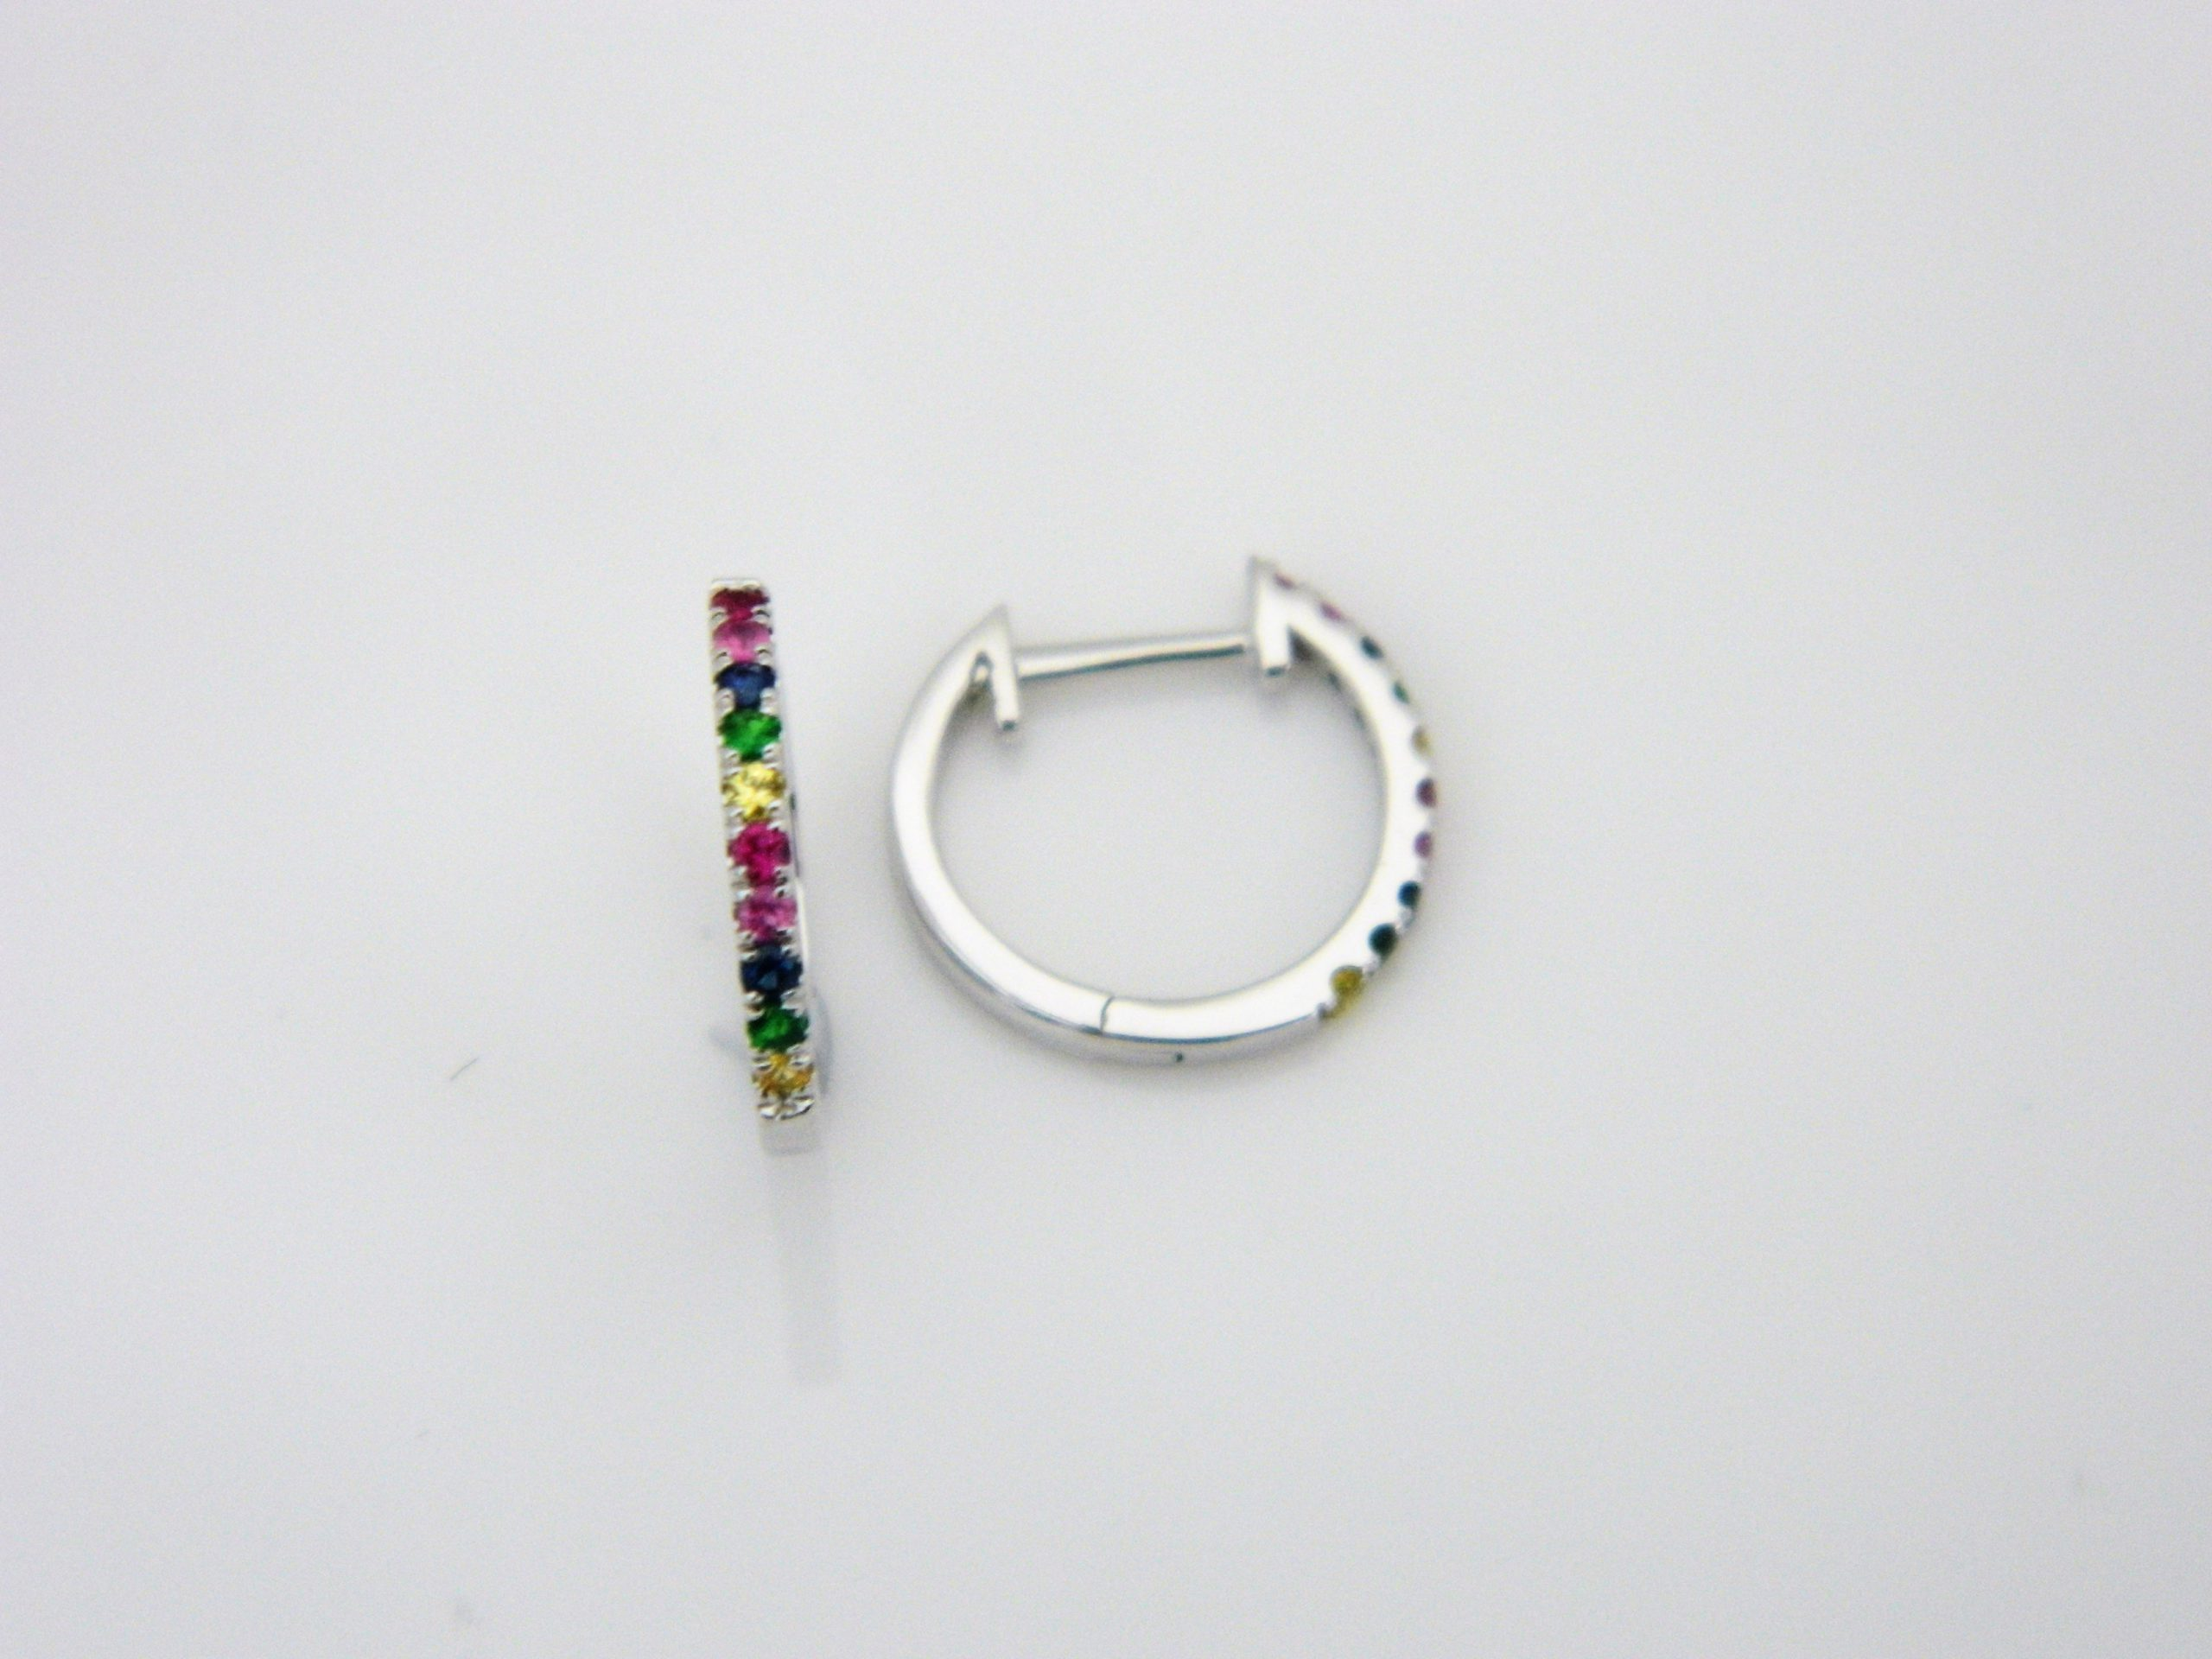 14 Karat White Gold Hoop Mounted Earrings with 4 Sapphire 0.03ct, 8 Pink Sapphires 0.06ct, 4 Multi-Color Sapphires 0.04ct and 4 Green Garnets 0.04ct tw.